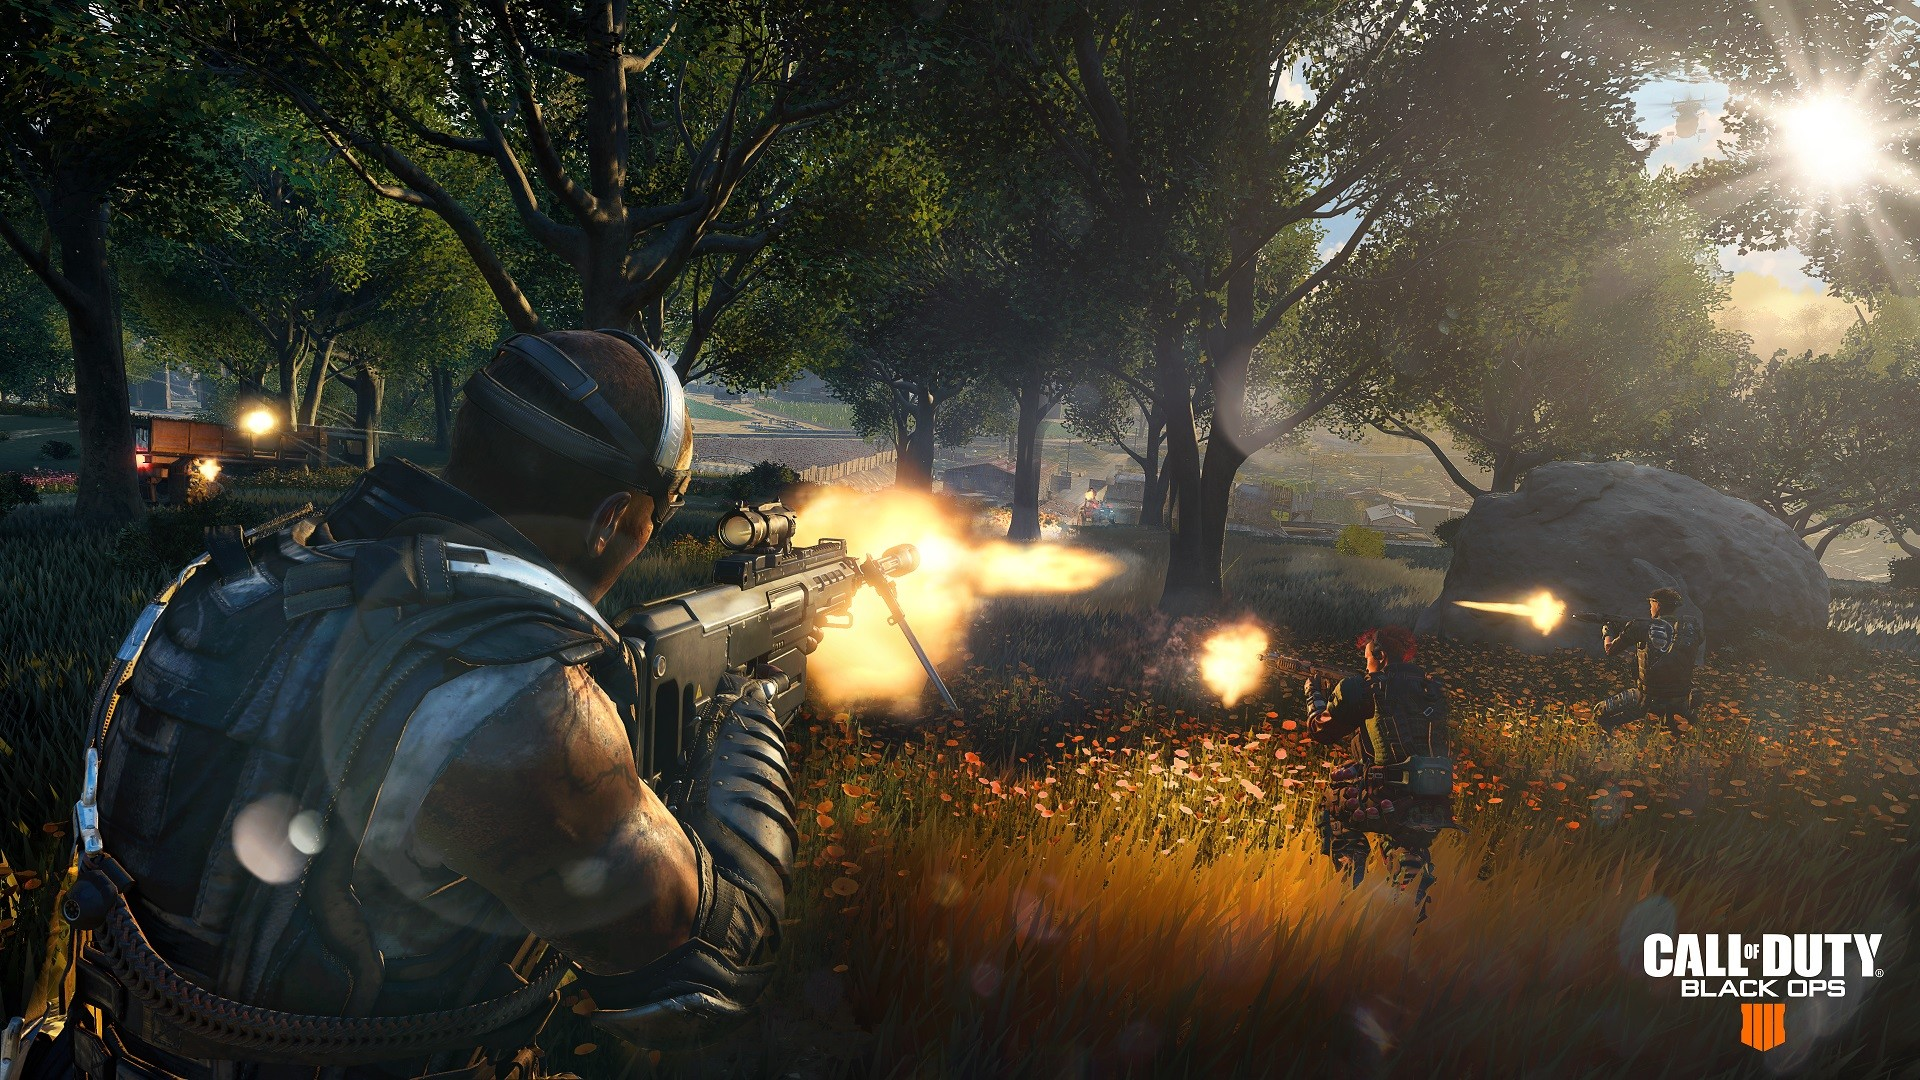 Black Ops 4's battle royale mode is free to play this entire month